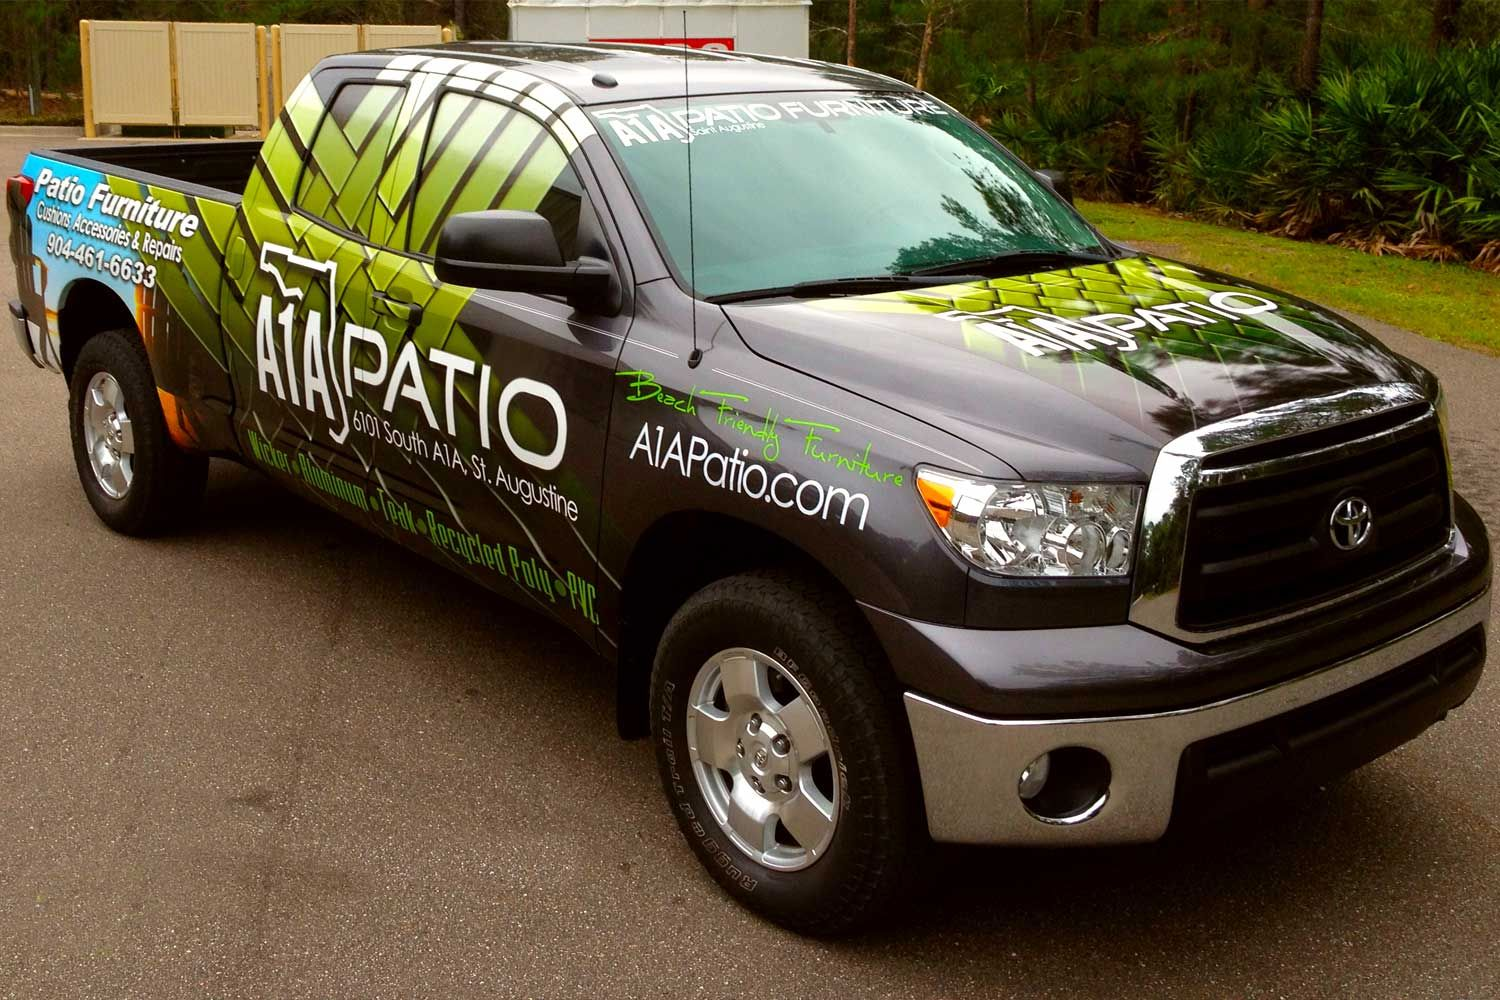 Reasons To Wrap A Vehicle Vary But The Most Common